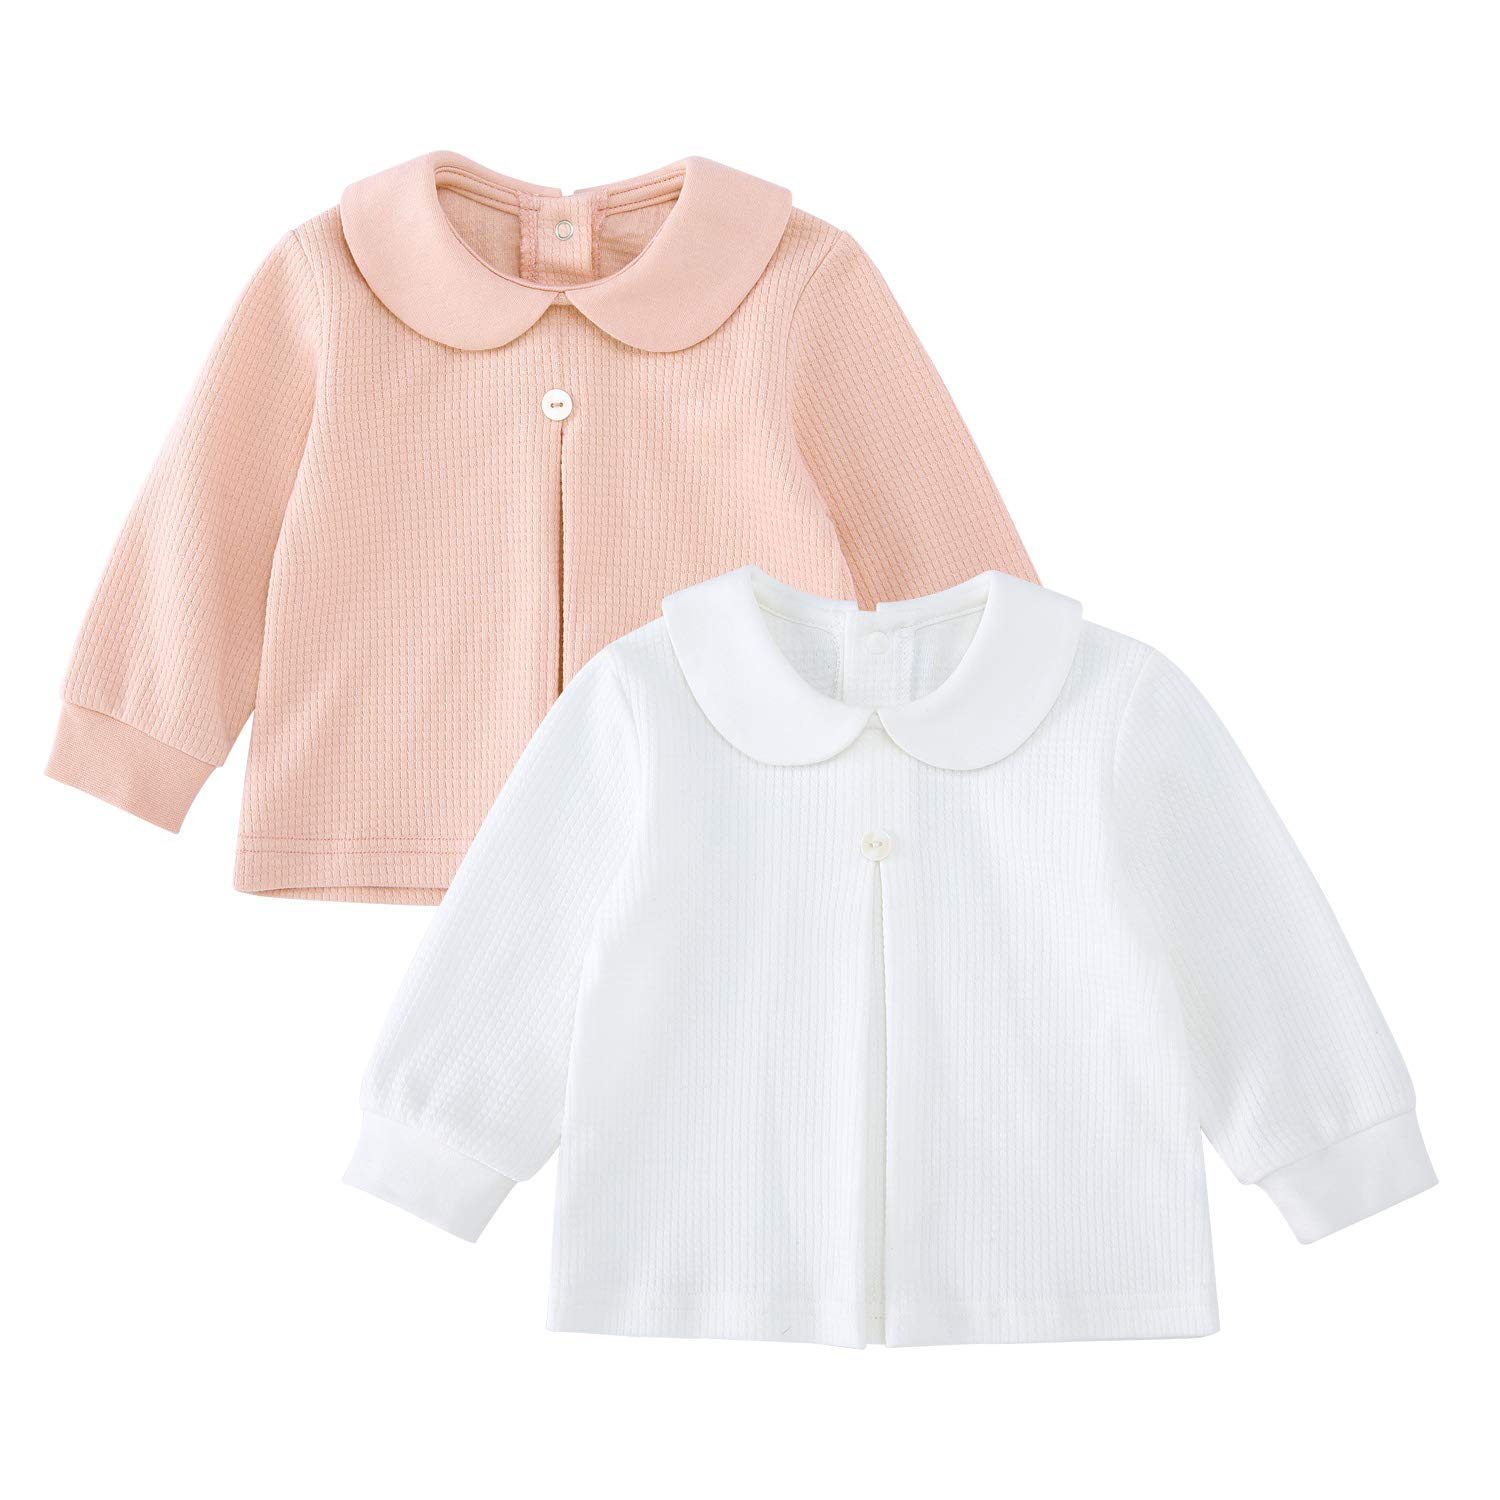 pureborn 2 Pack Baby Girls Cotton Basic Long Sleeve T Shirt Blouse Tops Bottom Peter Pan Collar Tee White& Pink